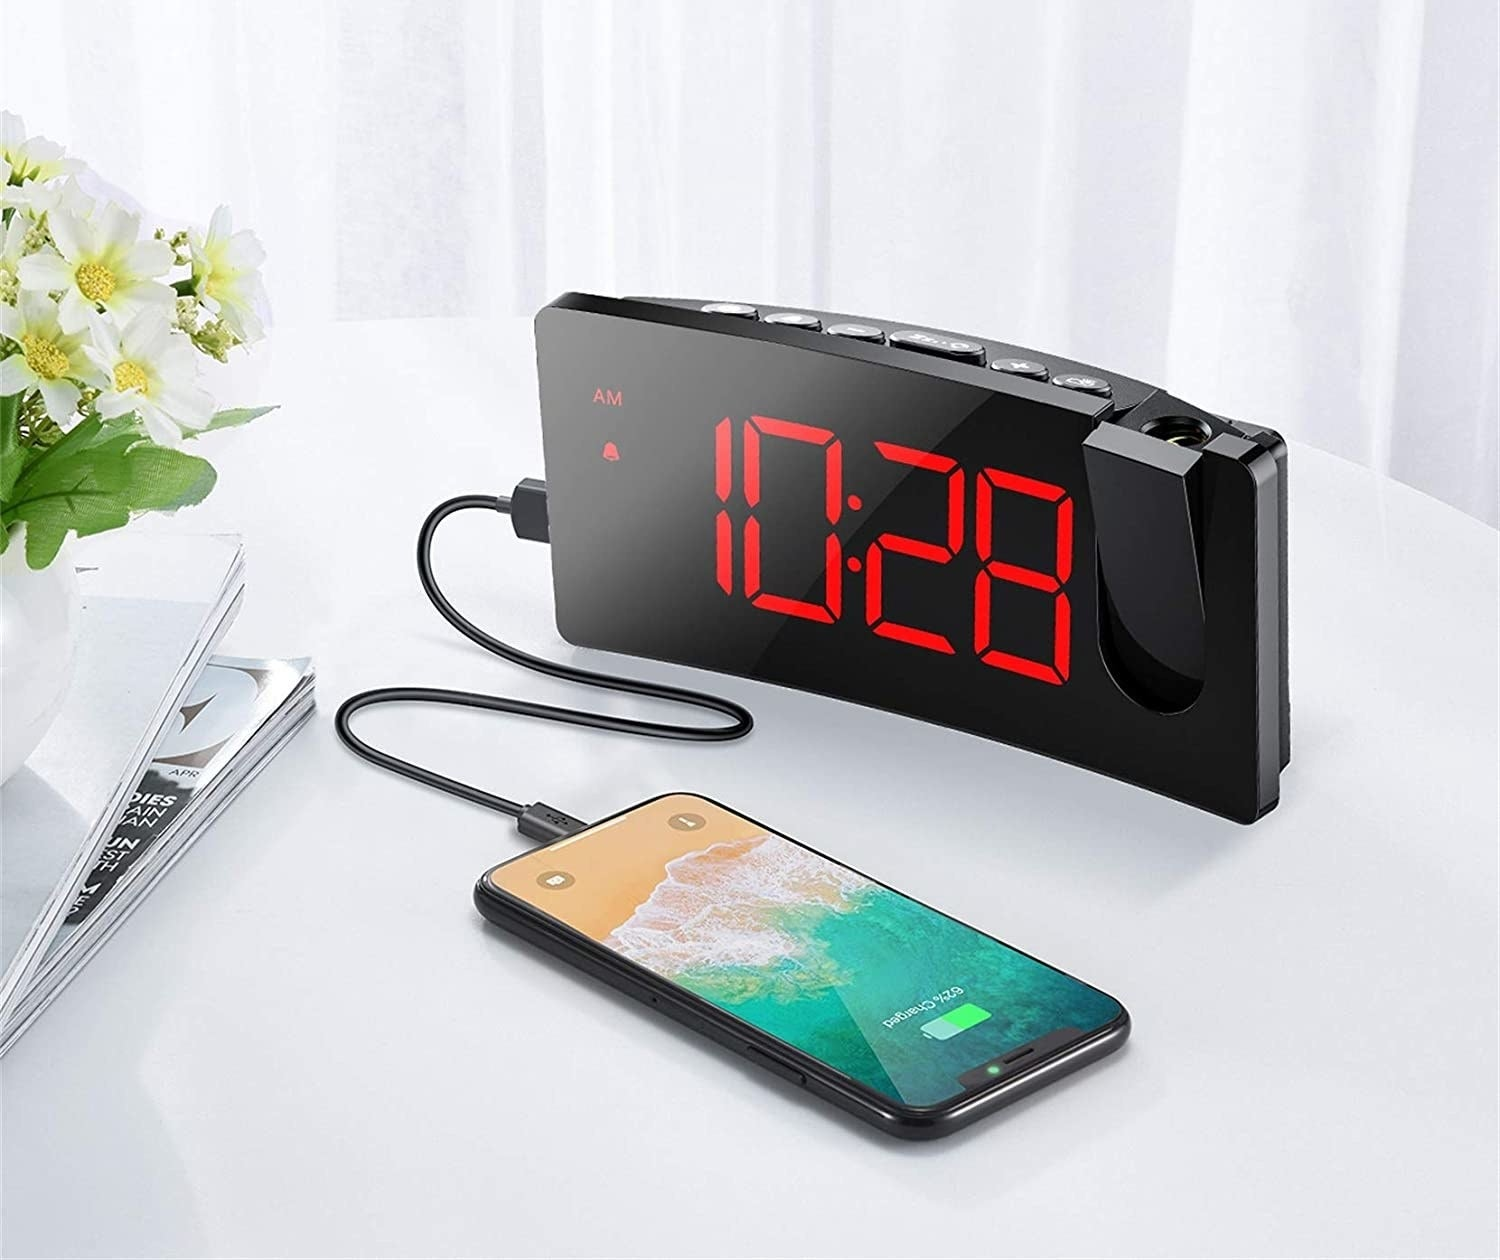 A curved alarm clock with a cell phone plugged in and charging